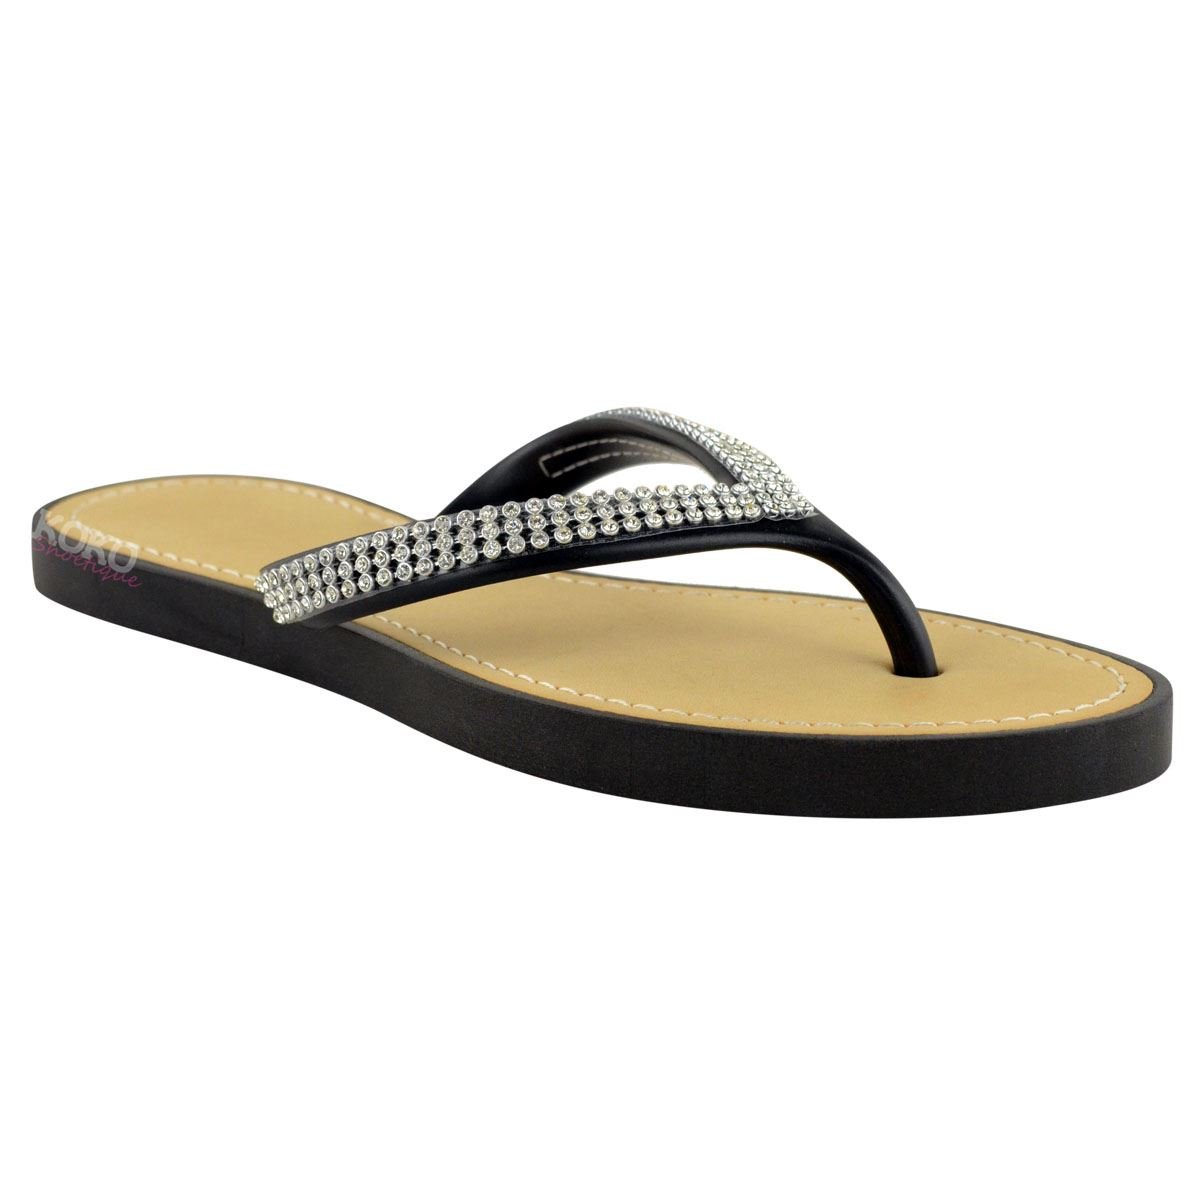 NEW-JELLY-SANDALS-WOMENS-LADIES-DIAMANTE-SUMMER-HOLIDAY-COMFORTS-FLIP-FLOPS-SIZE thumbnail 27